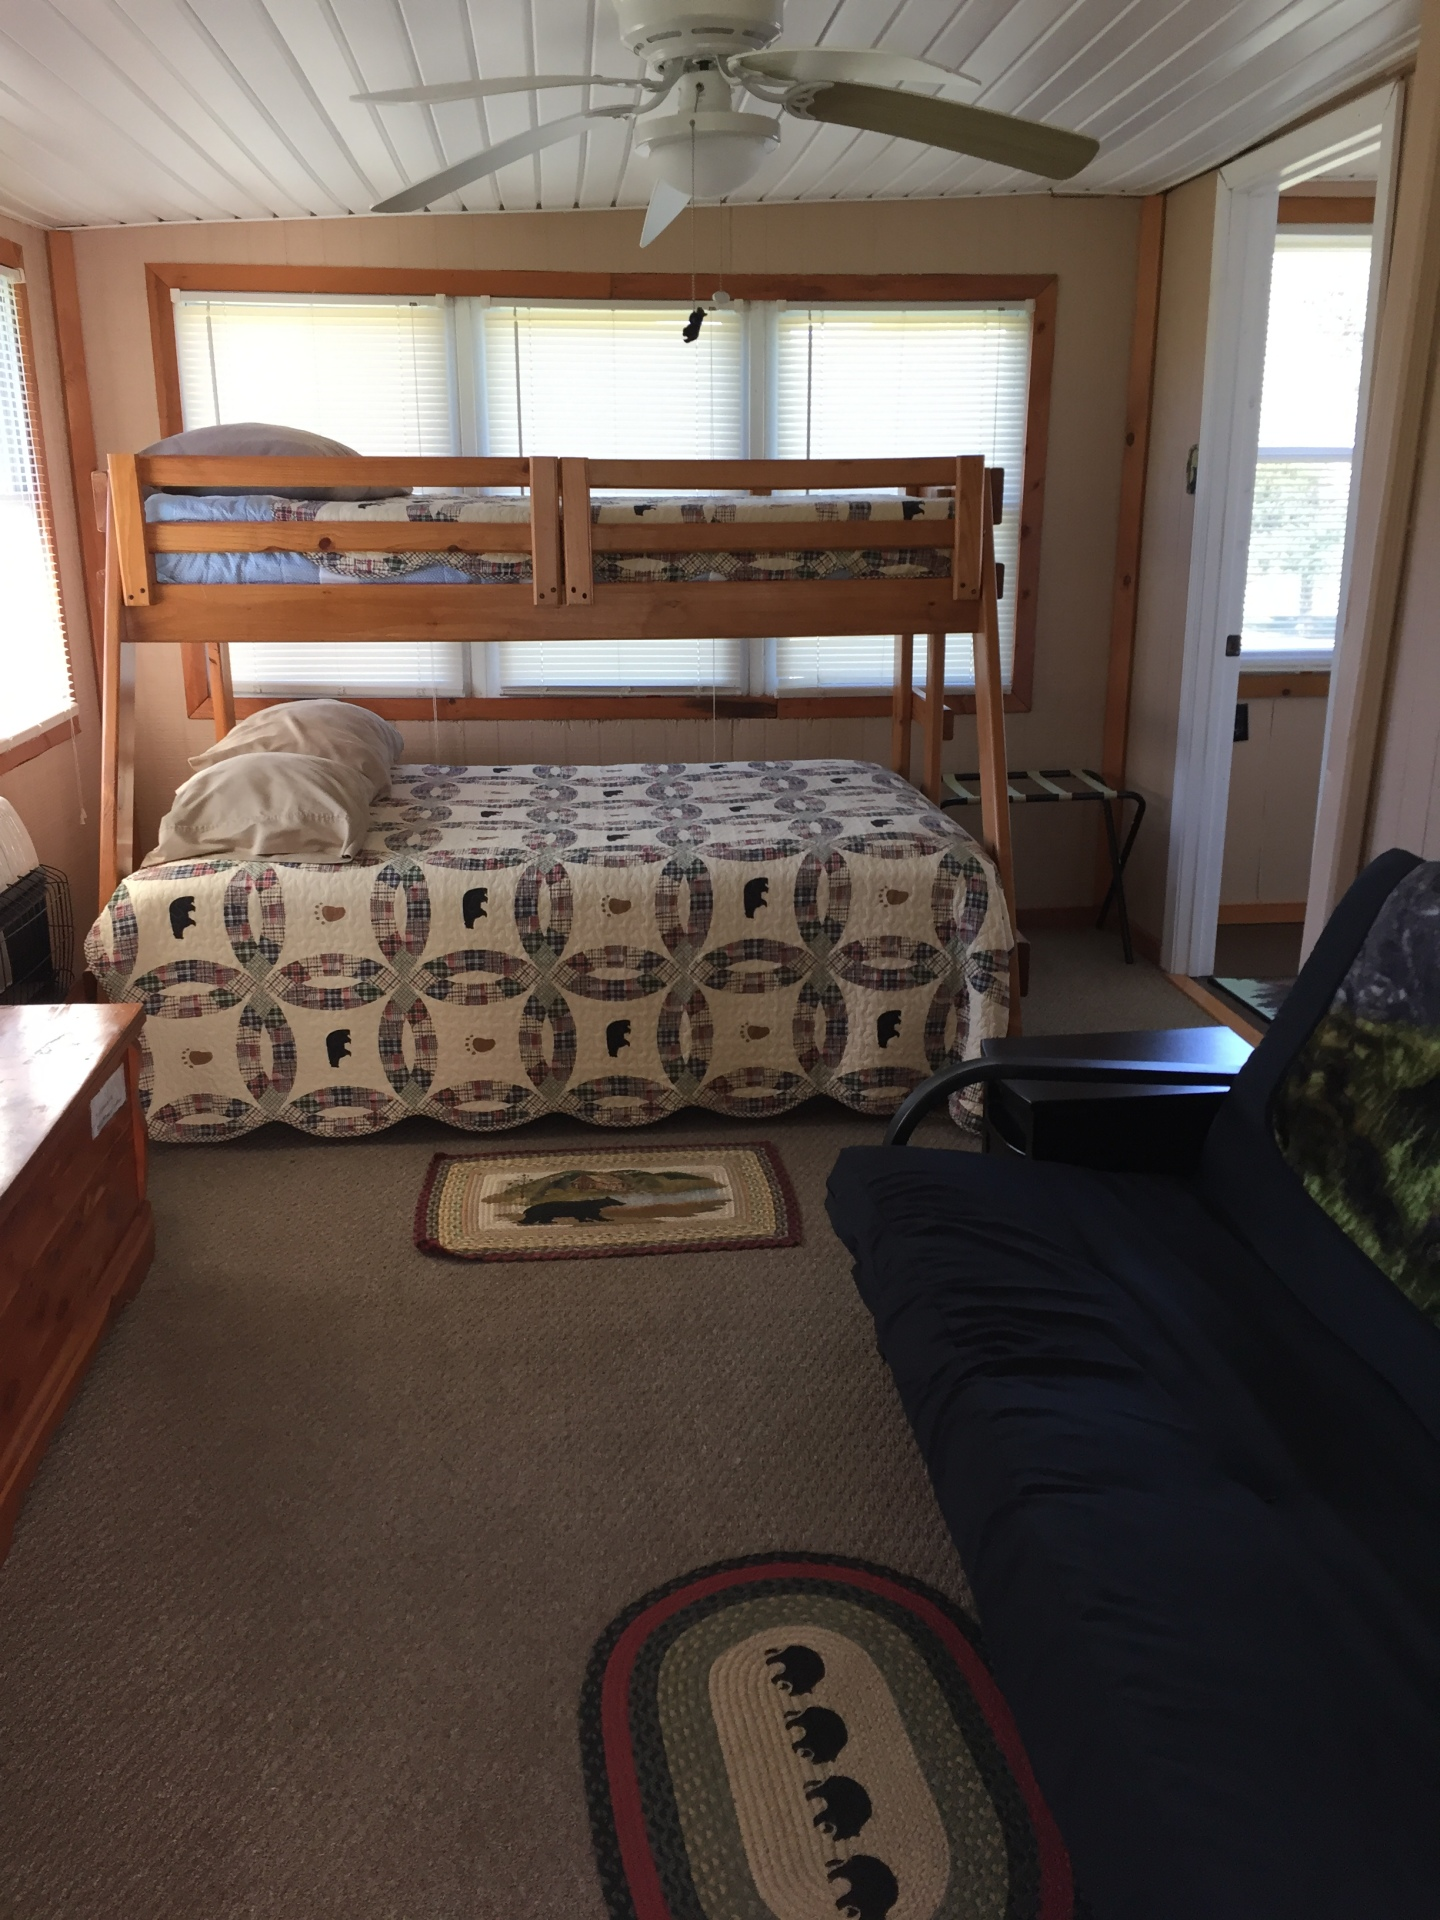 The Bunk House room